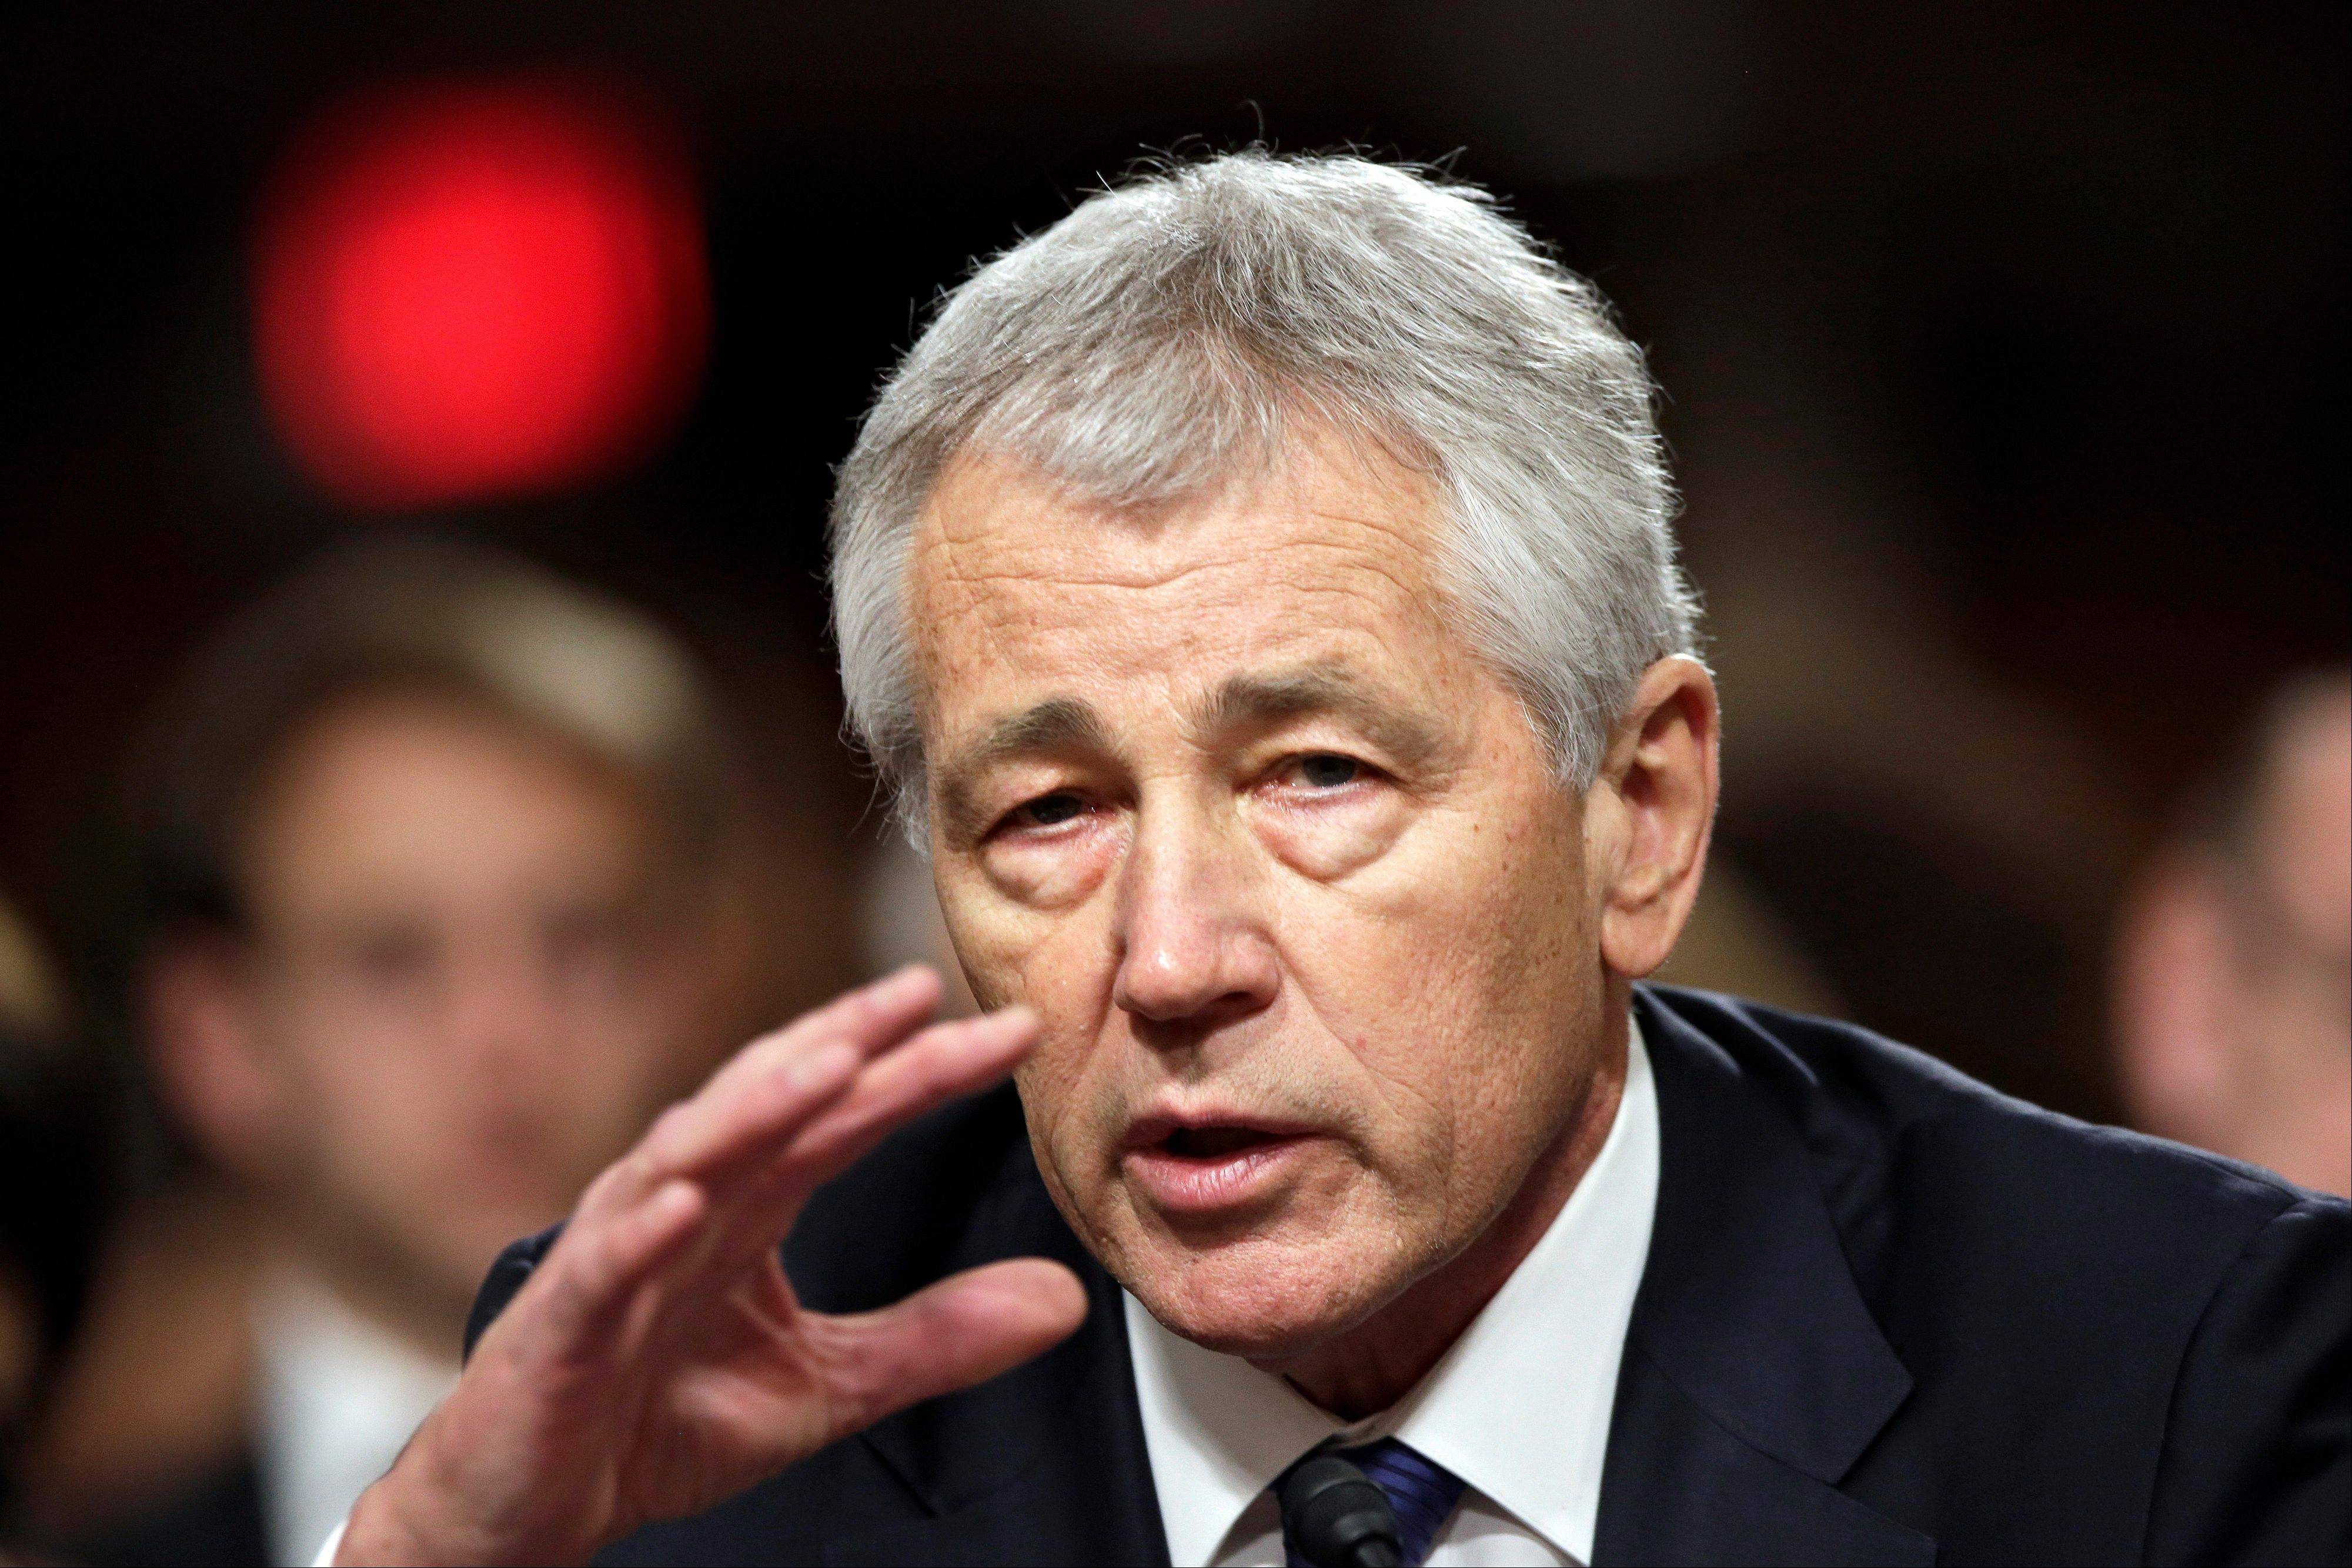 Chuck Hagel � Republican, twice-wounded Vietnam combat veteran and former Nebraska senator � cleared his first major hurdle in his bid to become the nation�s defense secretary when a bitterly divided Senate Armed Services Committee approved his nomination.